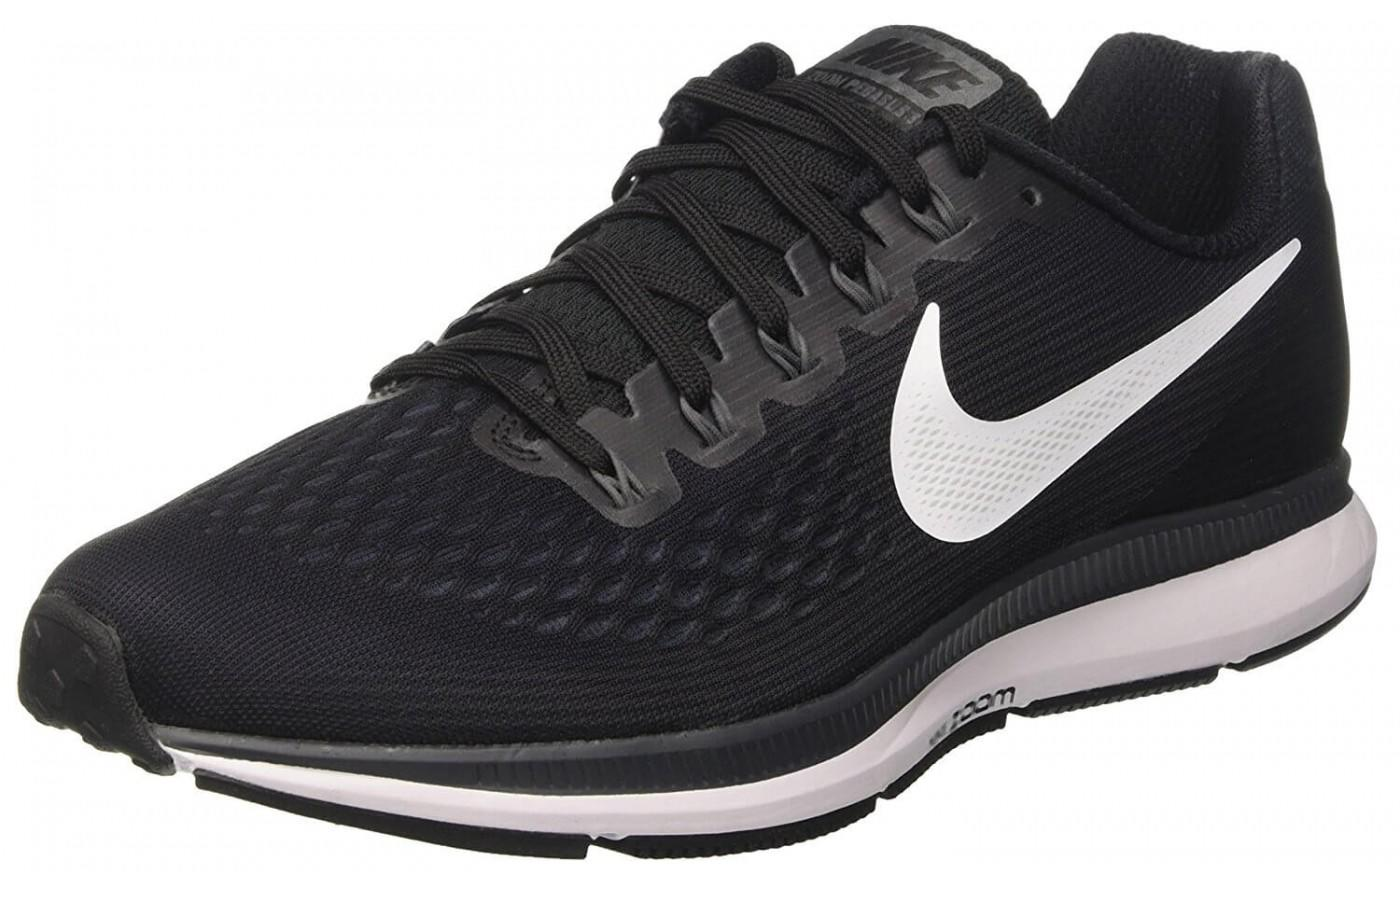 d699b224abc97 the upper of the Nike Air Zoom Pegasus 34 is made of breathable Flymesh ...